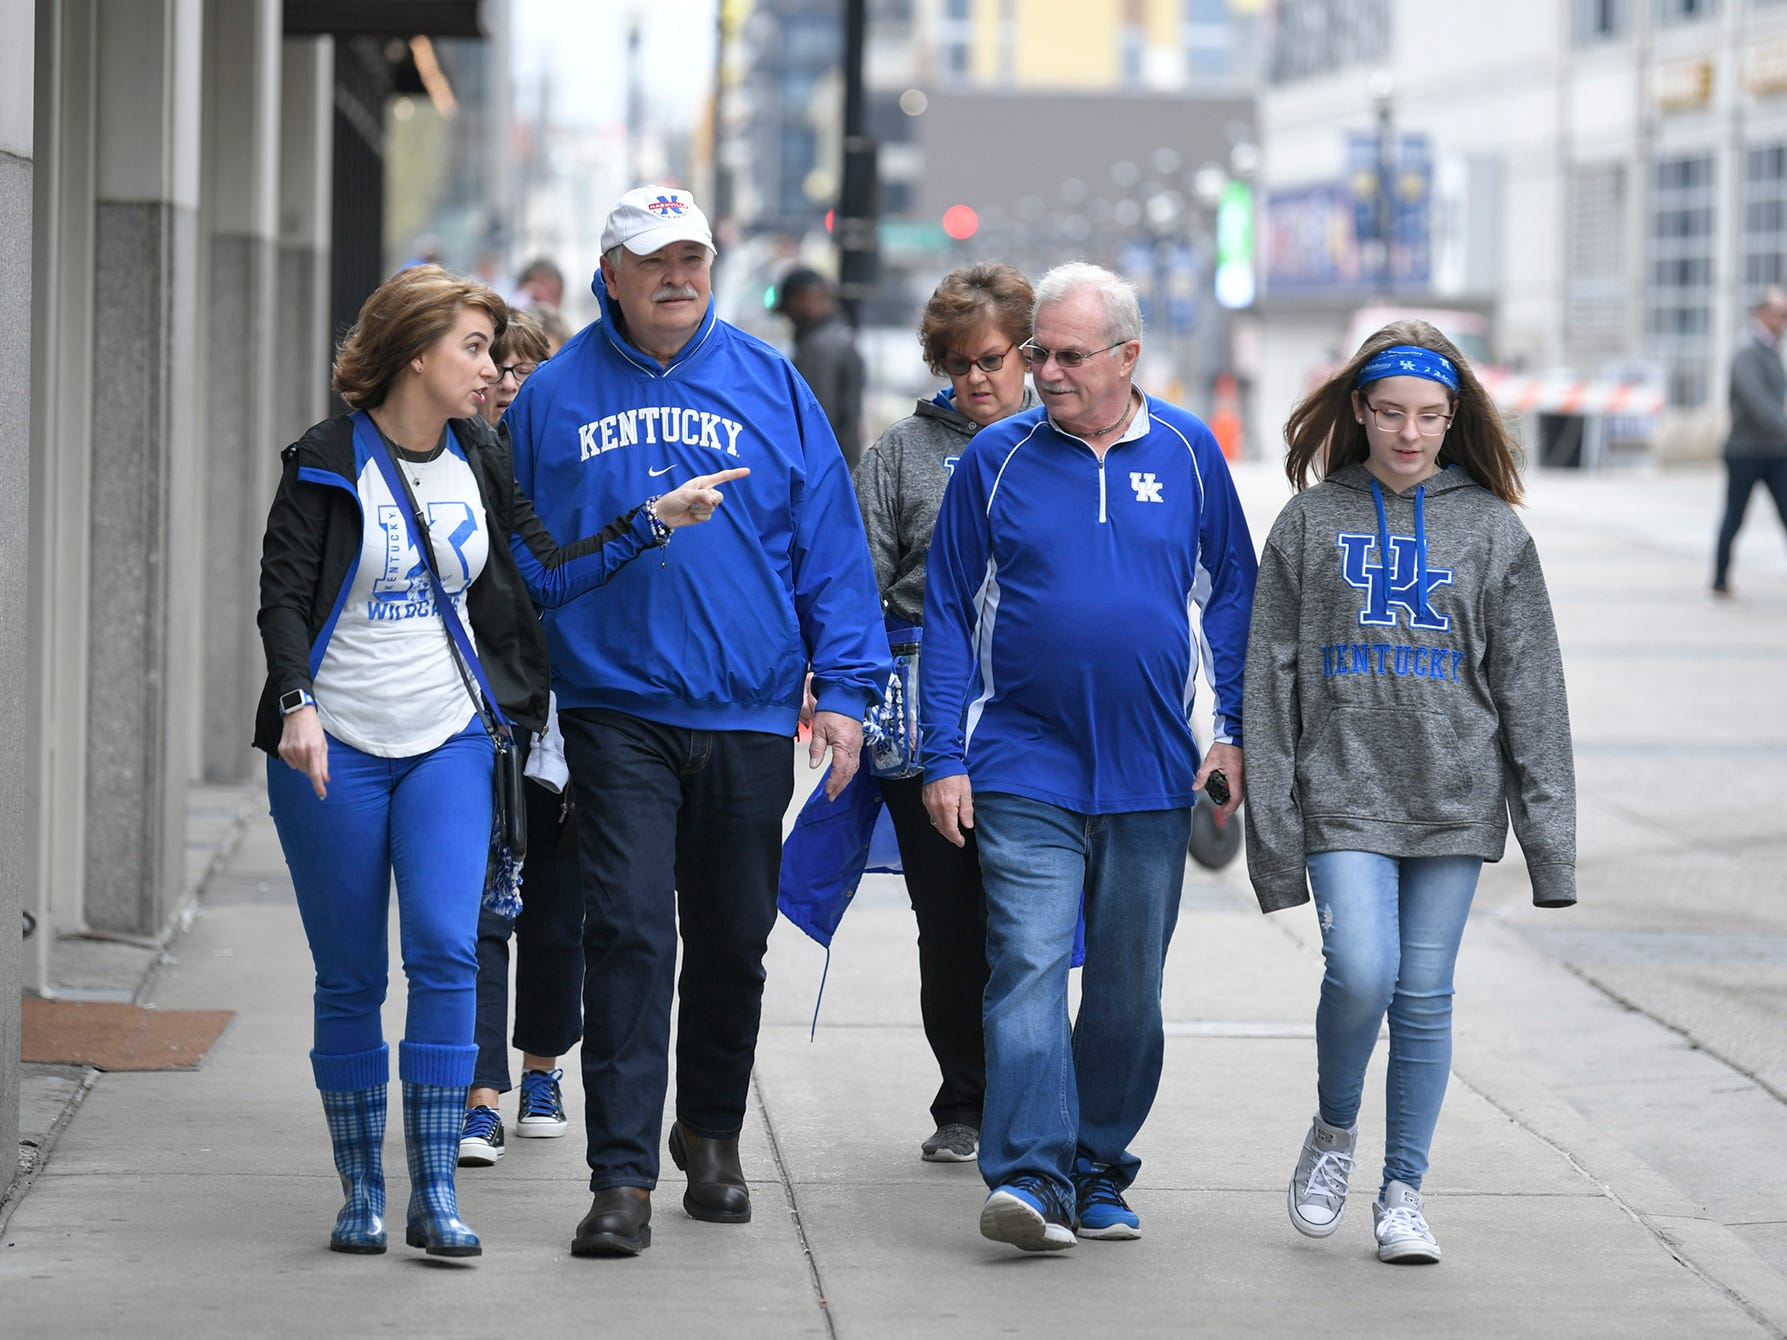 Kentucky fans April Peal, Jim Primm, Ricky Peal and Brooklyn Swatzell walk through downtown Nashville on Thursday, March 14, 2019. The group arrived early to watch the SEC Men's Basketball Tournament in Nashville.